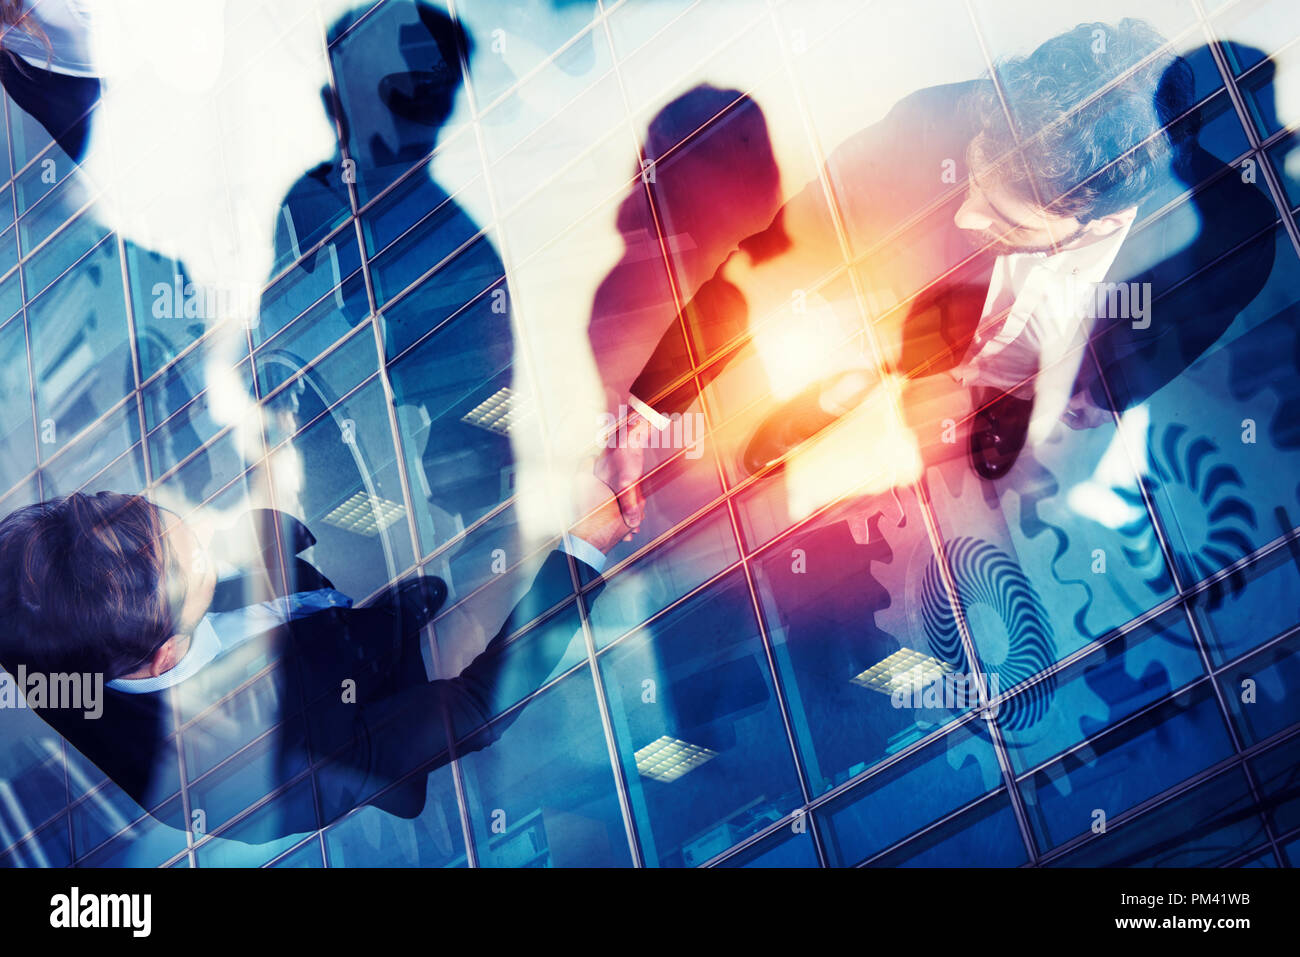 Handshaking business person in office. concept of teamwork and partnership. double exposure with gears system and network effects - Stock Image